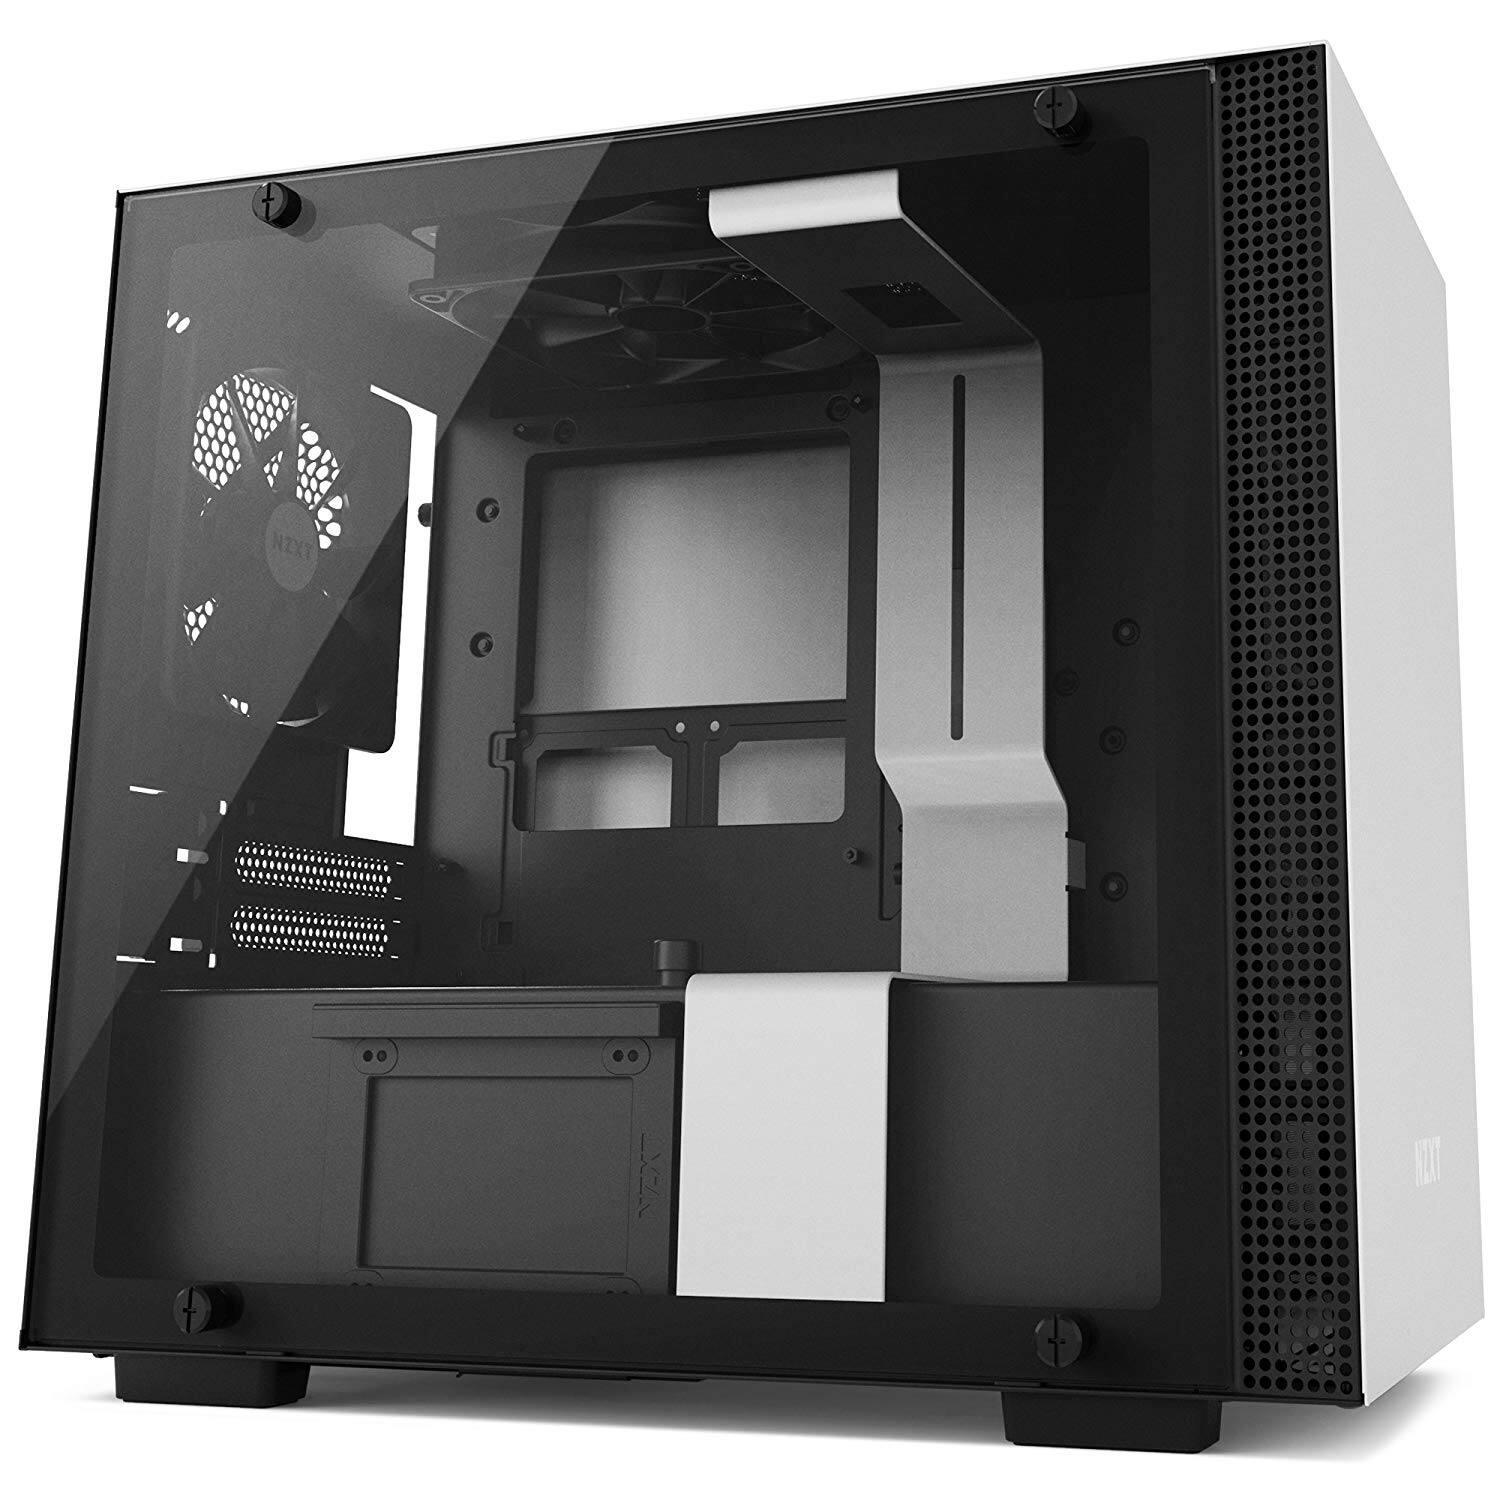 NZXT H200 - Mini-ITX PC Gaming Case - White - $59.98 @ Amazon